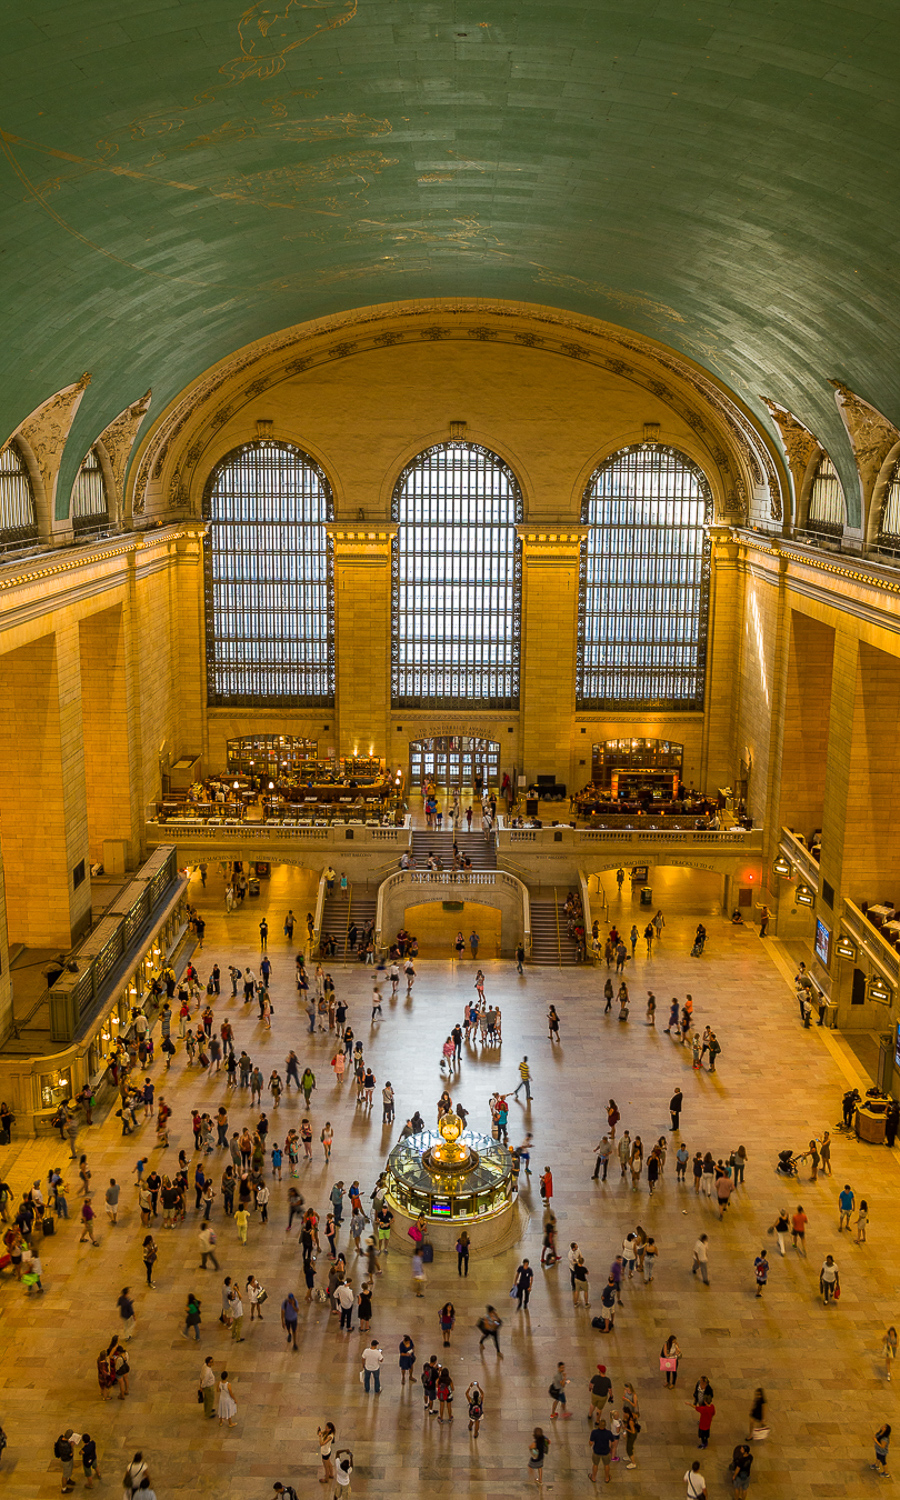 Grand Central Terminal from above